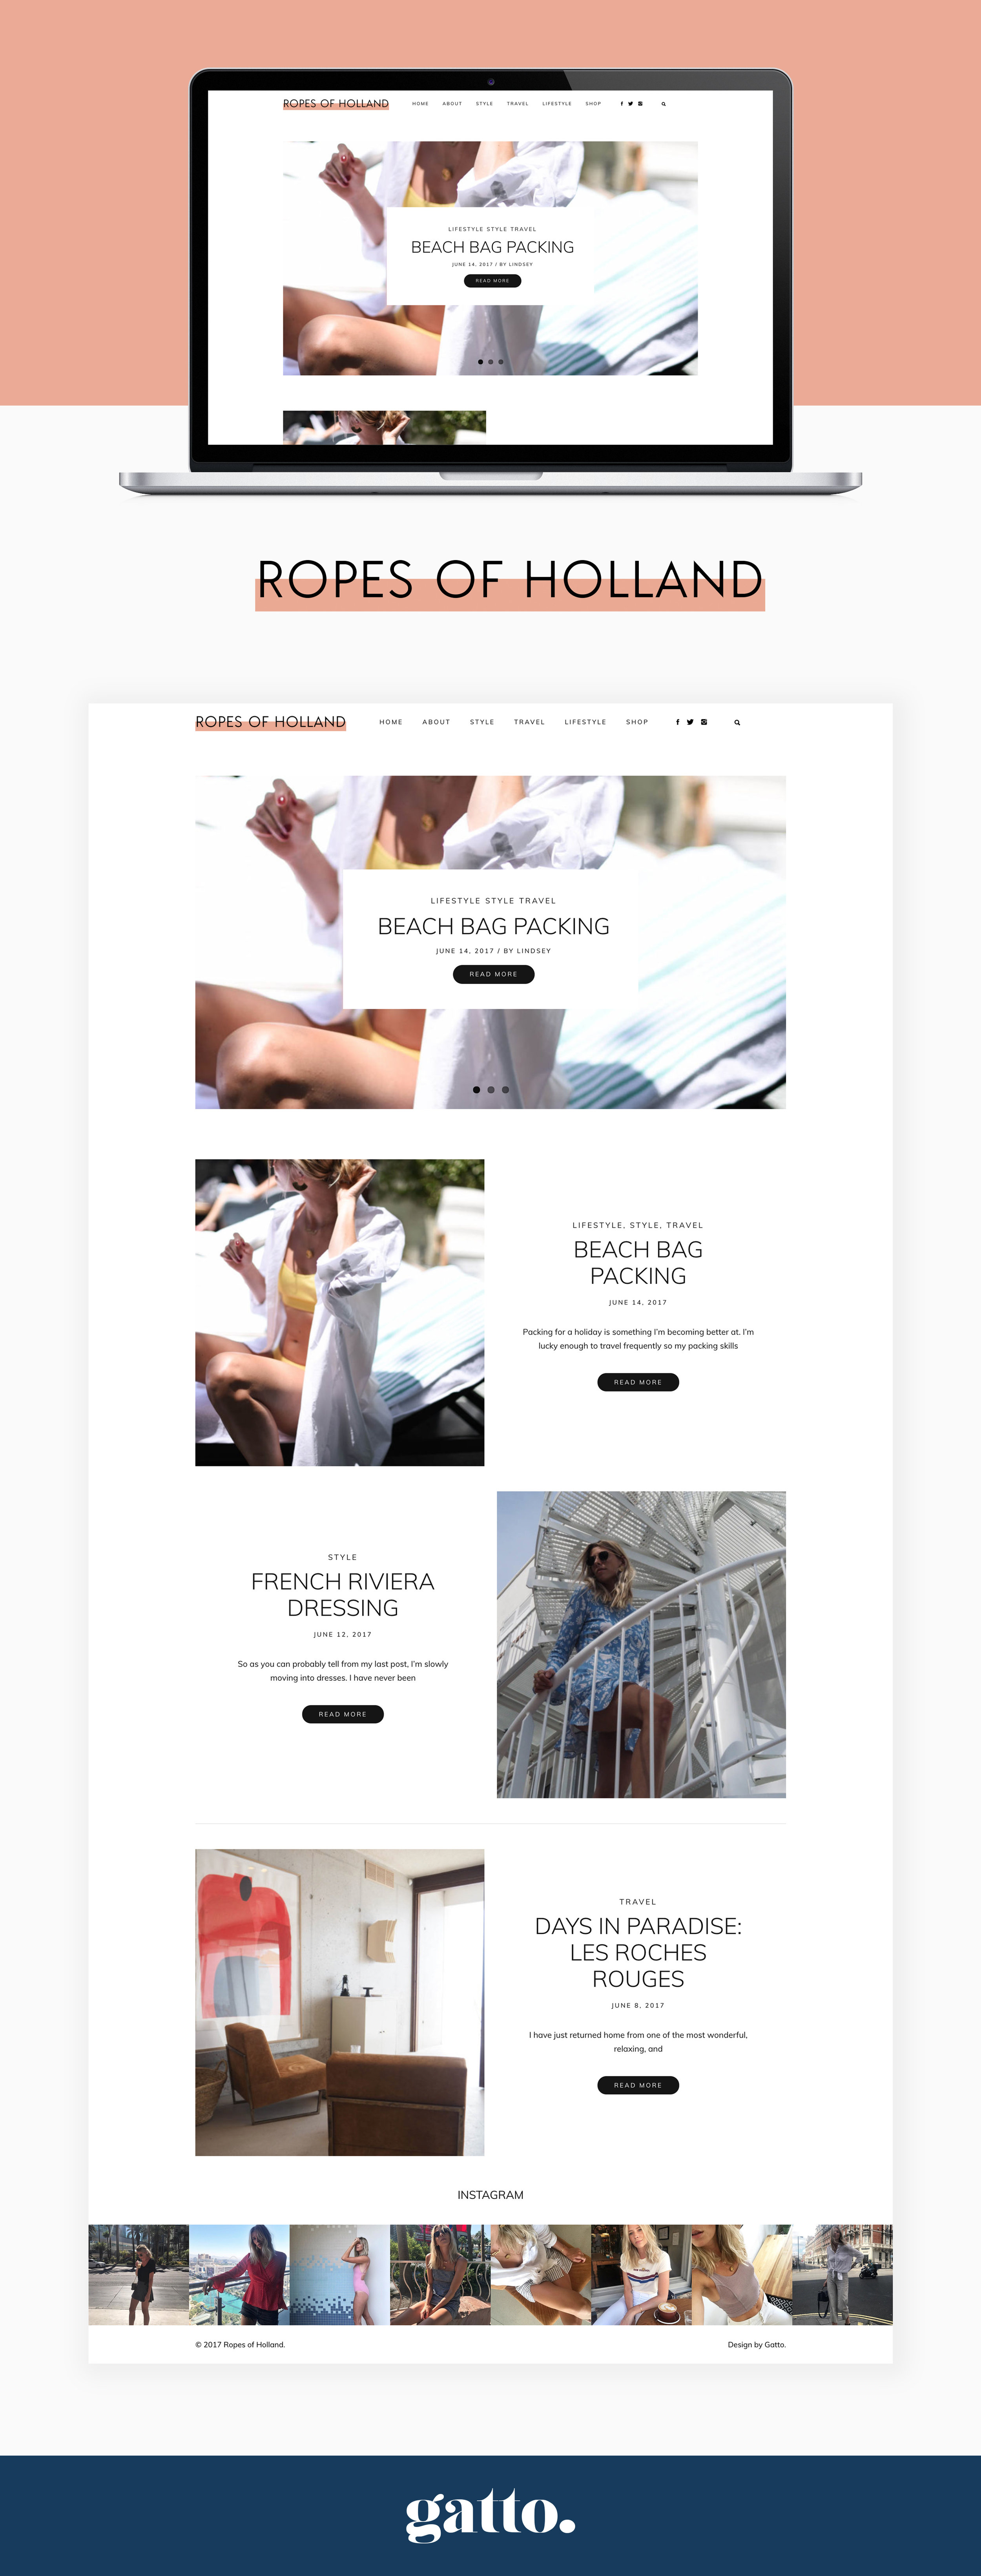 Ropes of Holland Website Design | Gatto Branding & Web Design | Creative Business | Design Studio